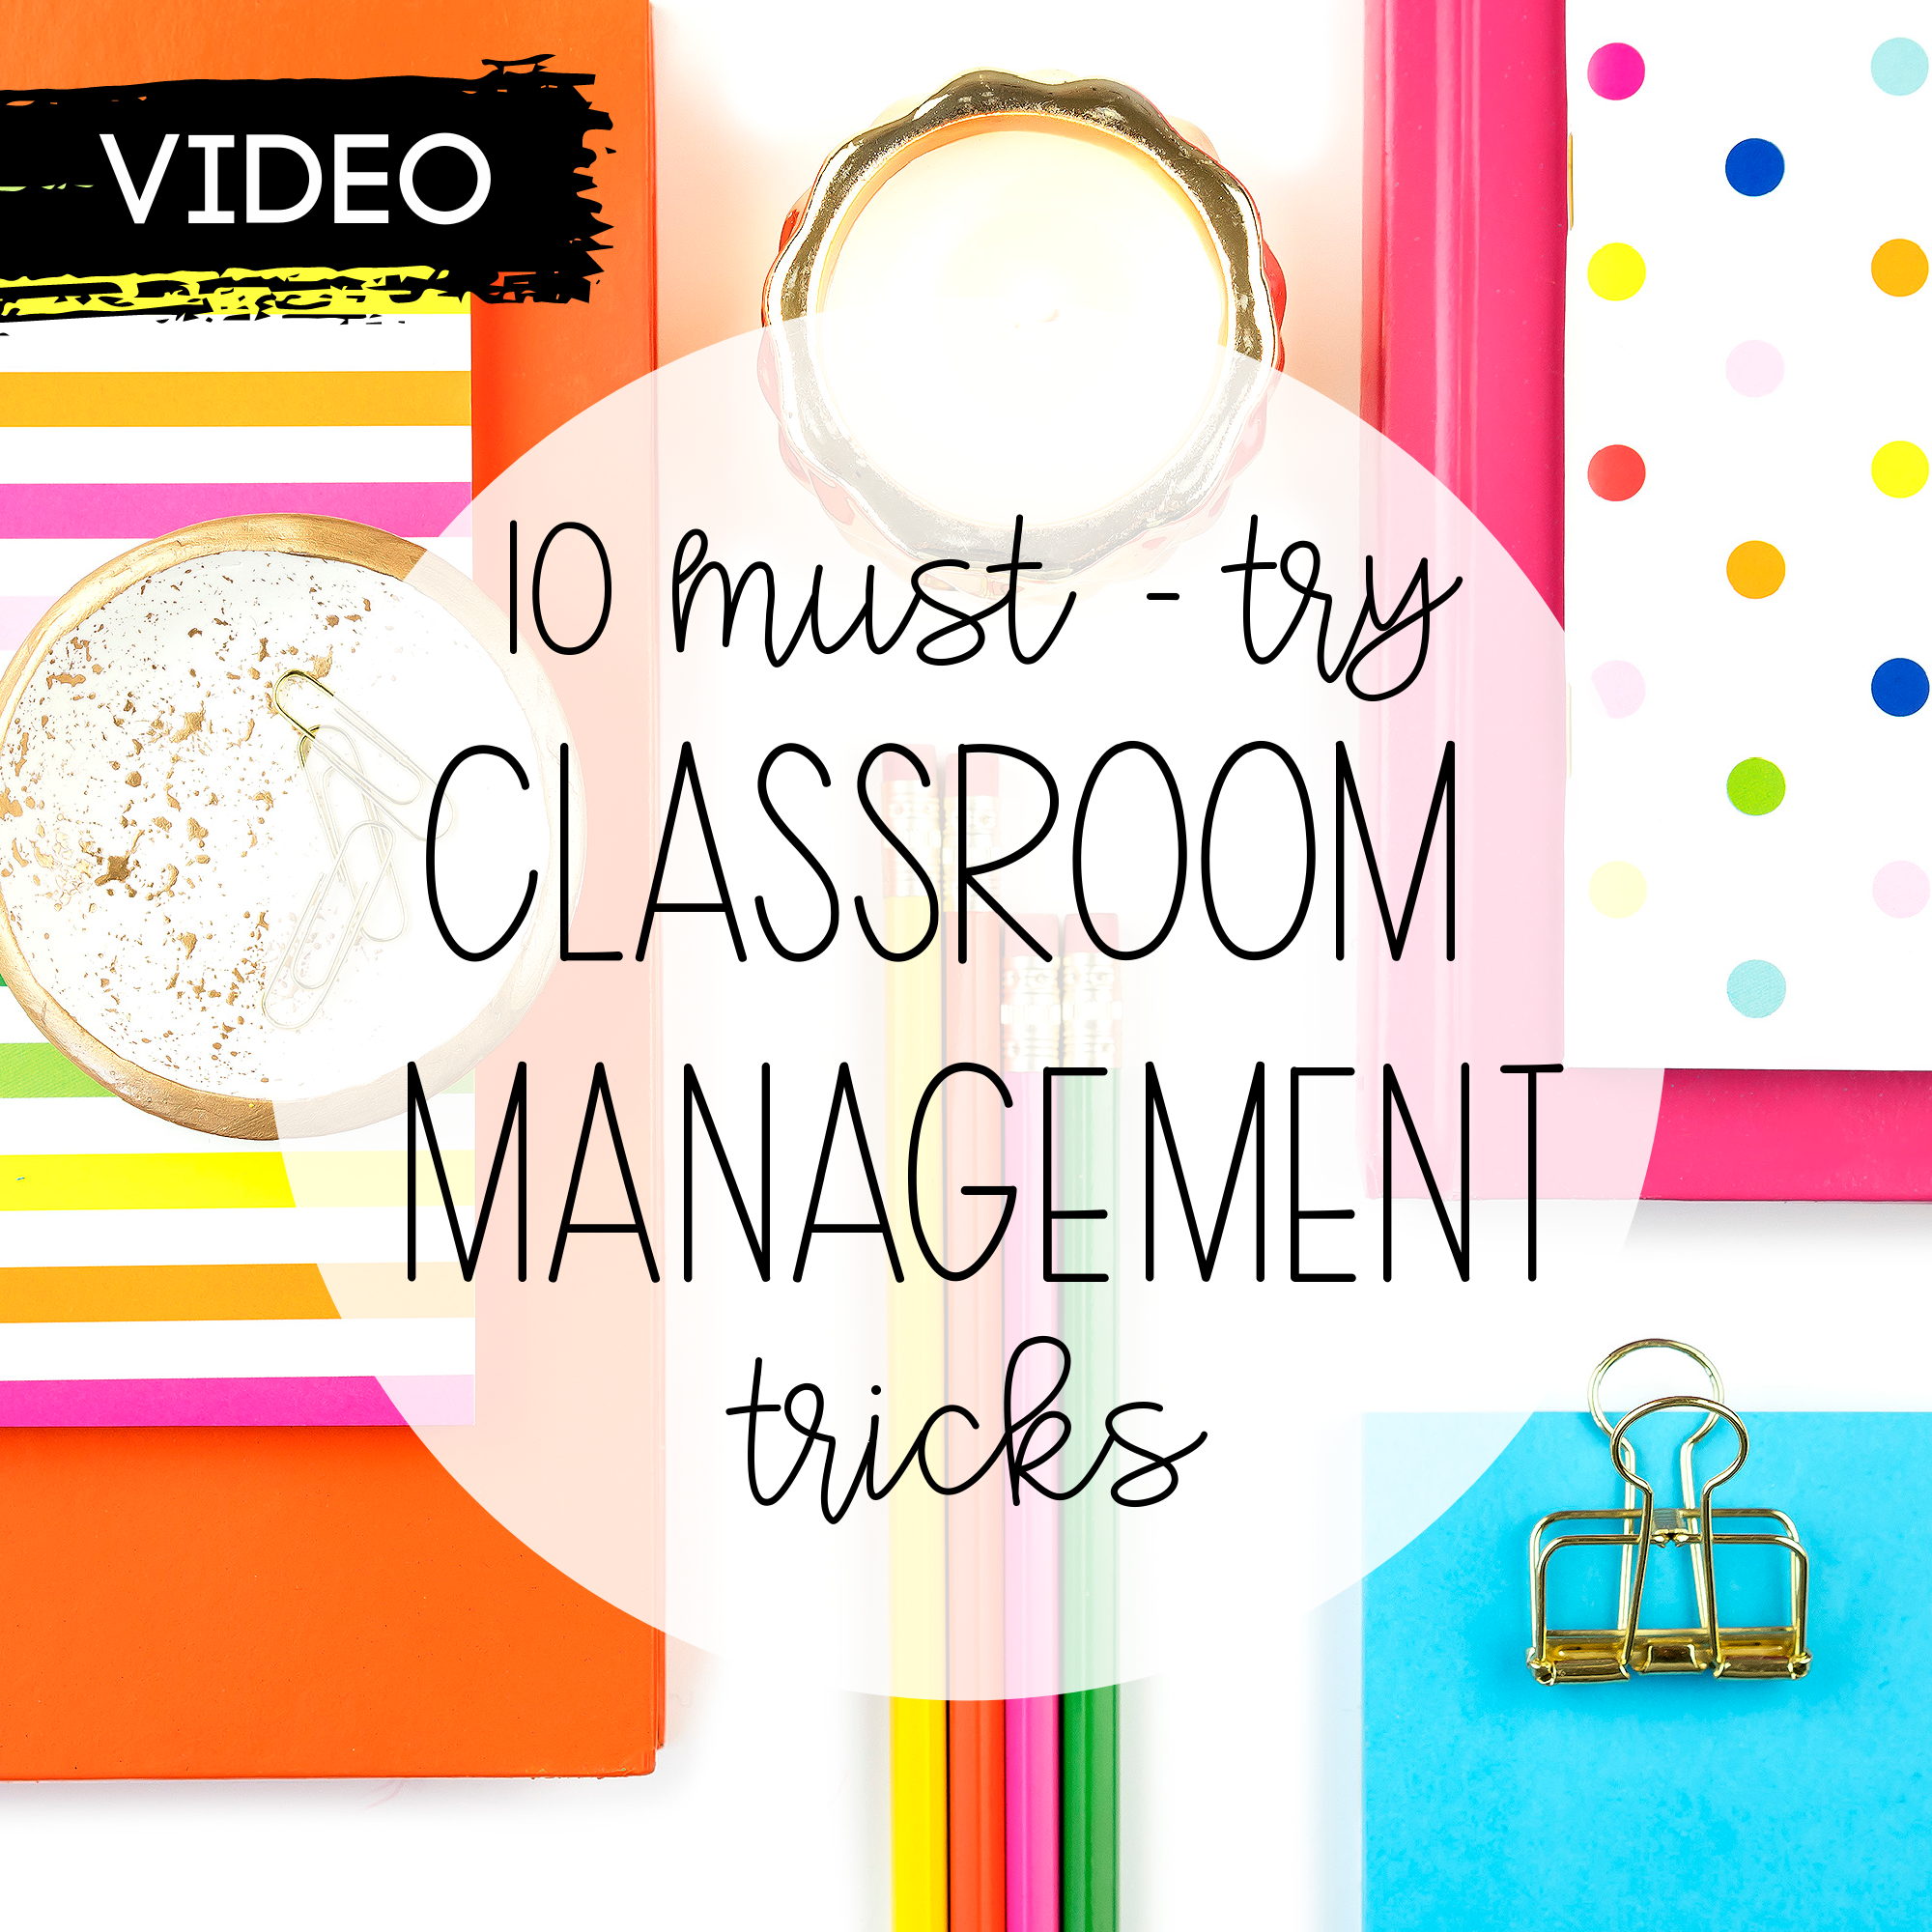 10 Tricks That'll Take Your Classroom Management to the Next Level